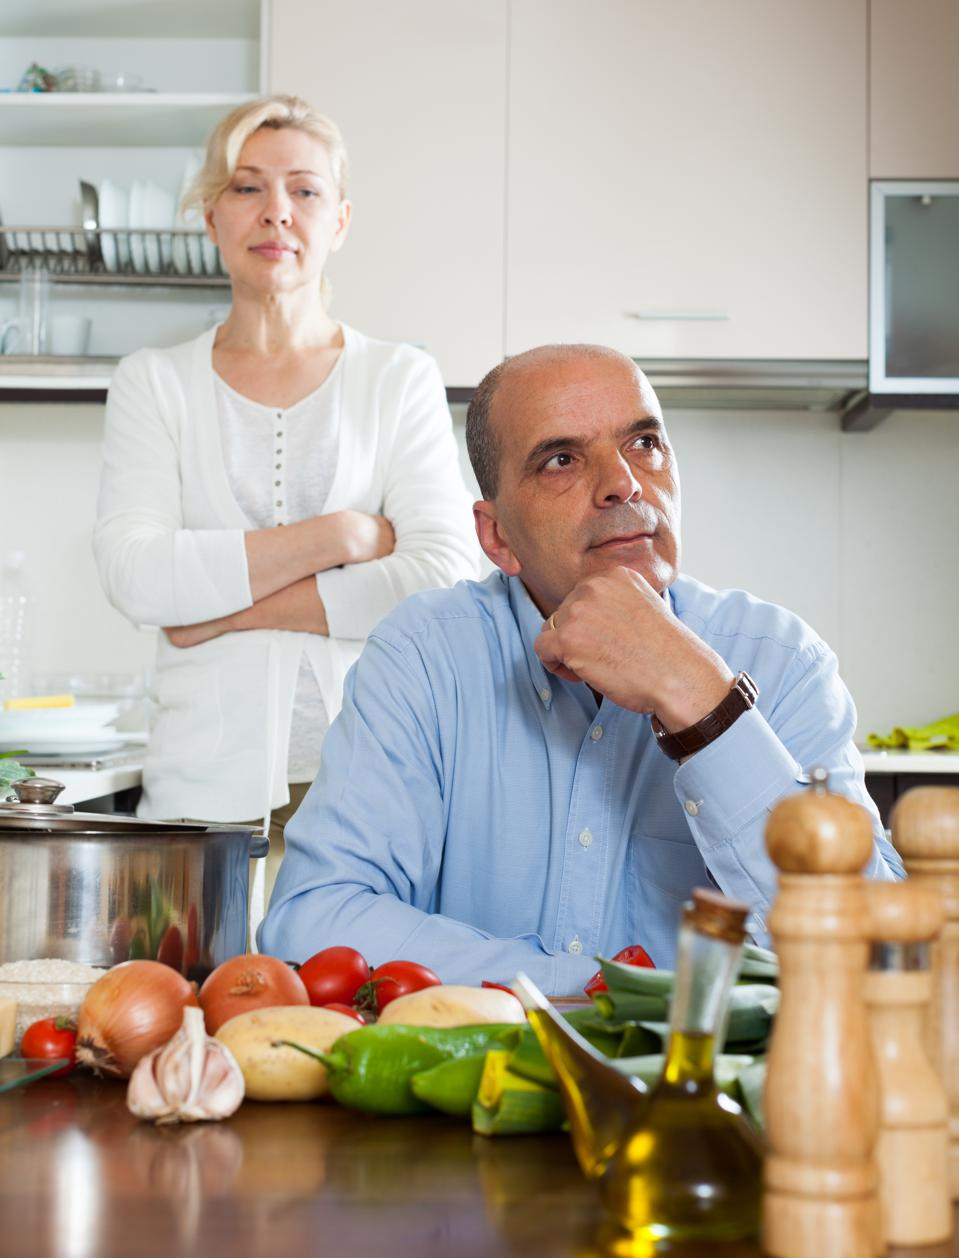 Traditional Retirement Planning For Couples Is Fatally Flawed